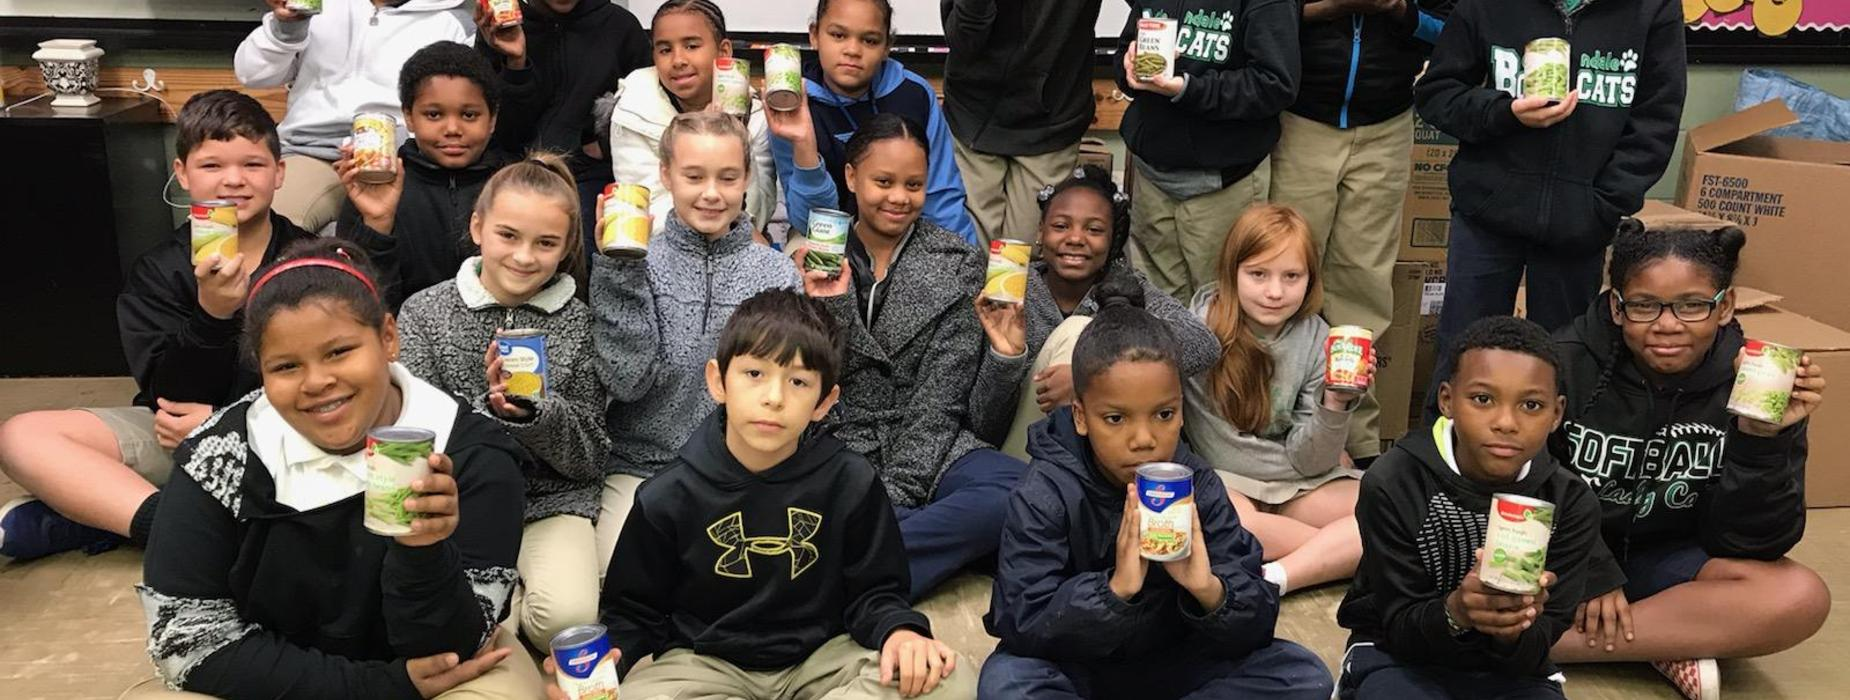 n the Spirit of Giving, Ms. Stelly's class helps collect can goods for the needy families in our community. With the generosity of our Glendale family, we collected over 1,500 can goods. Each year, we work in conjunction with the Eunice Rotary club to help the citizens of Eunice.